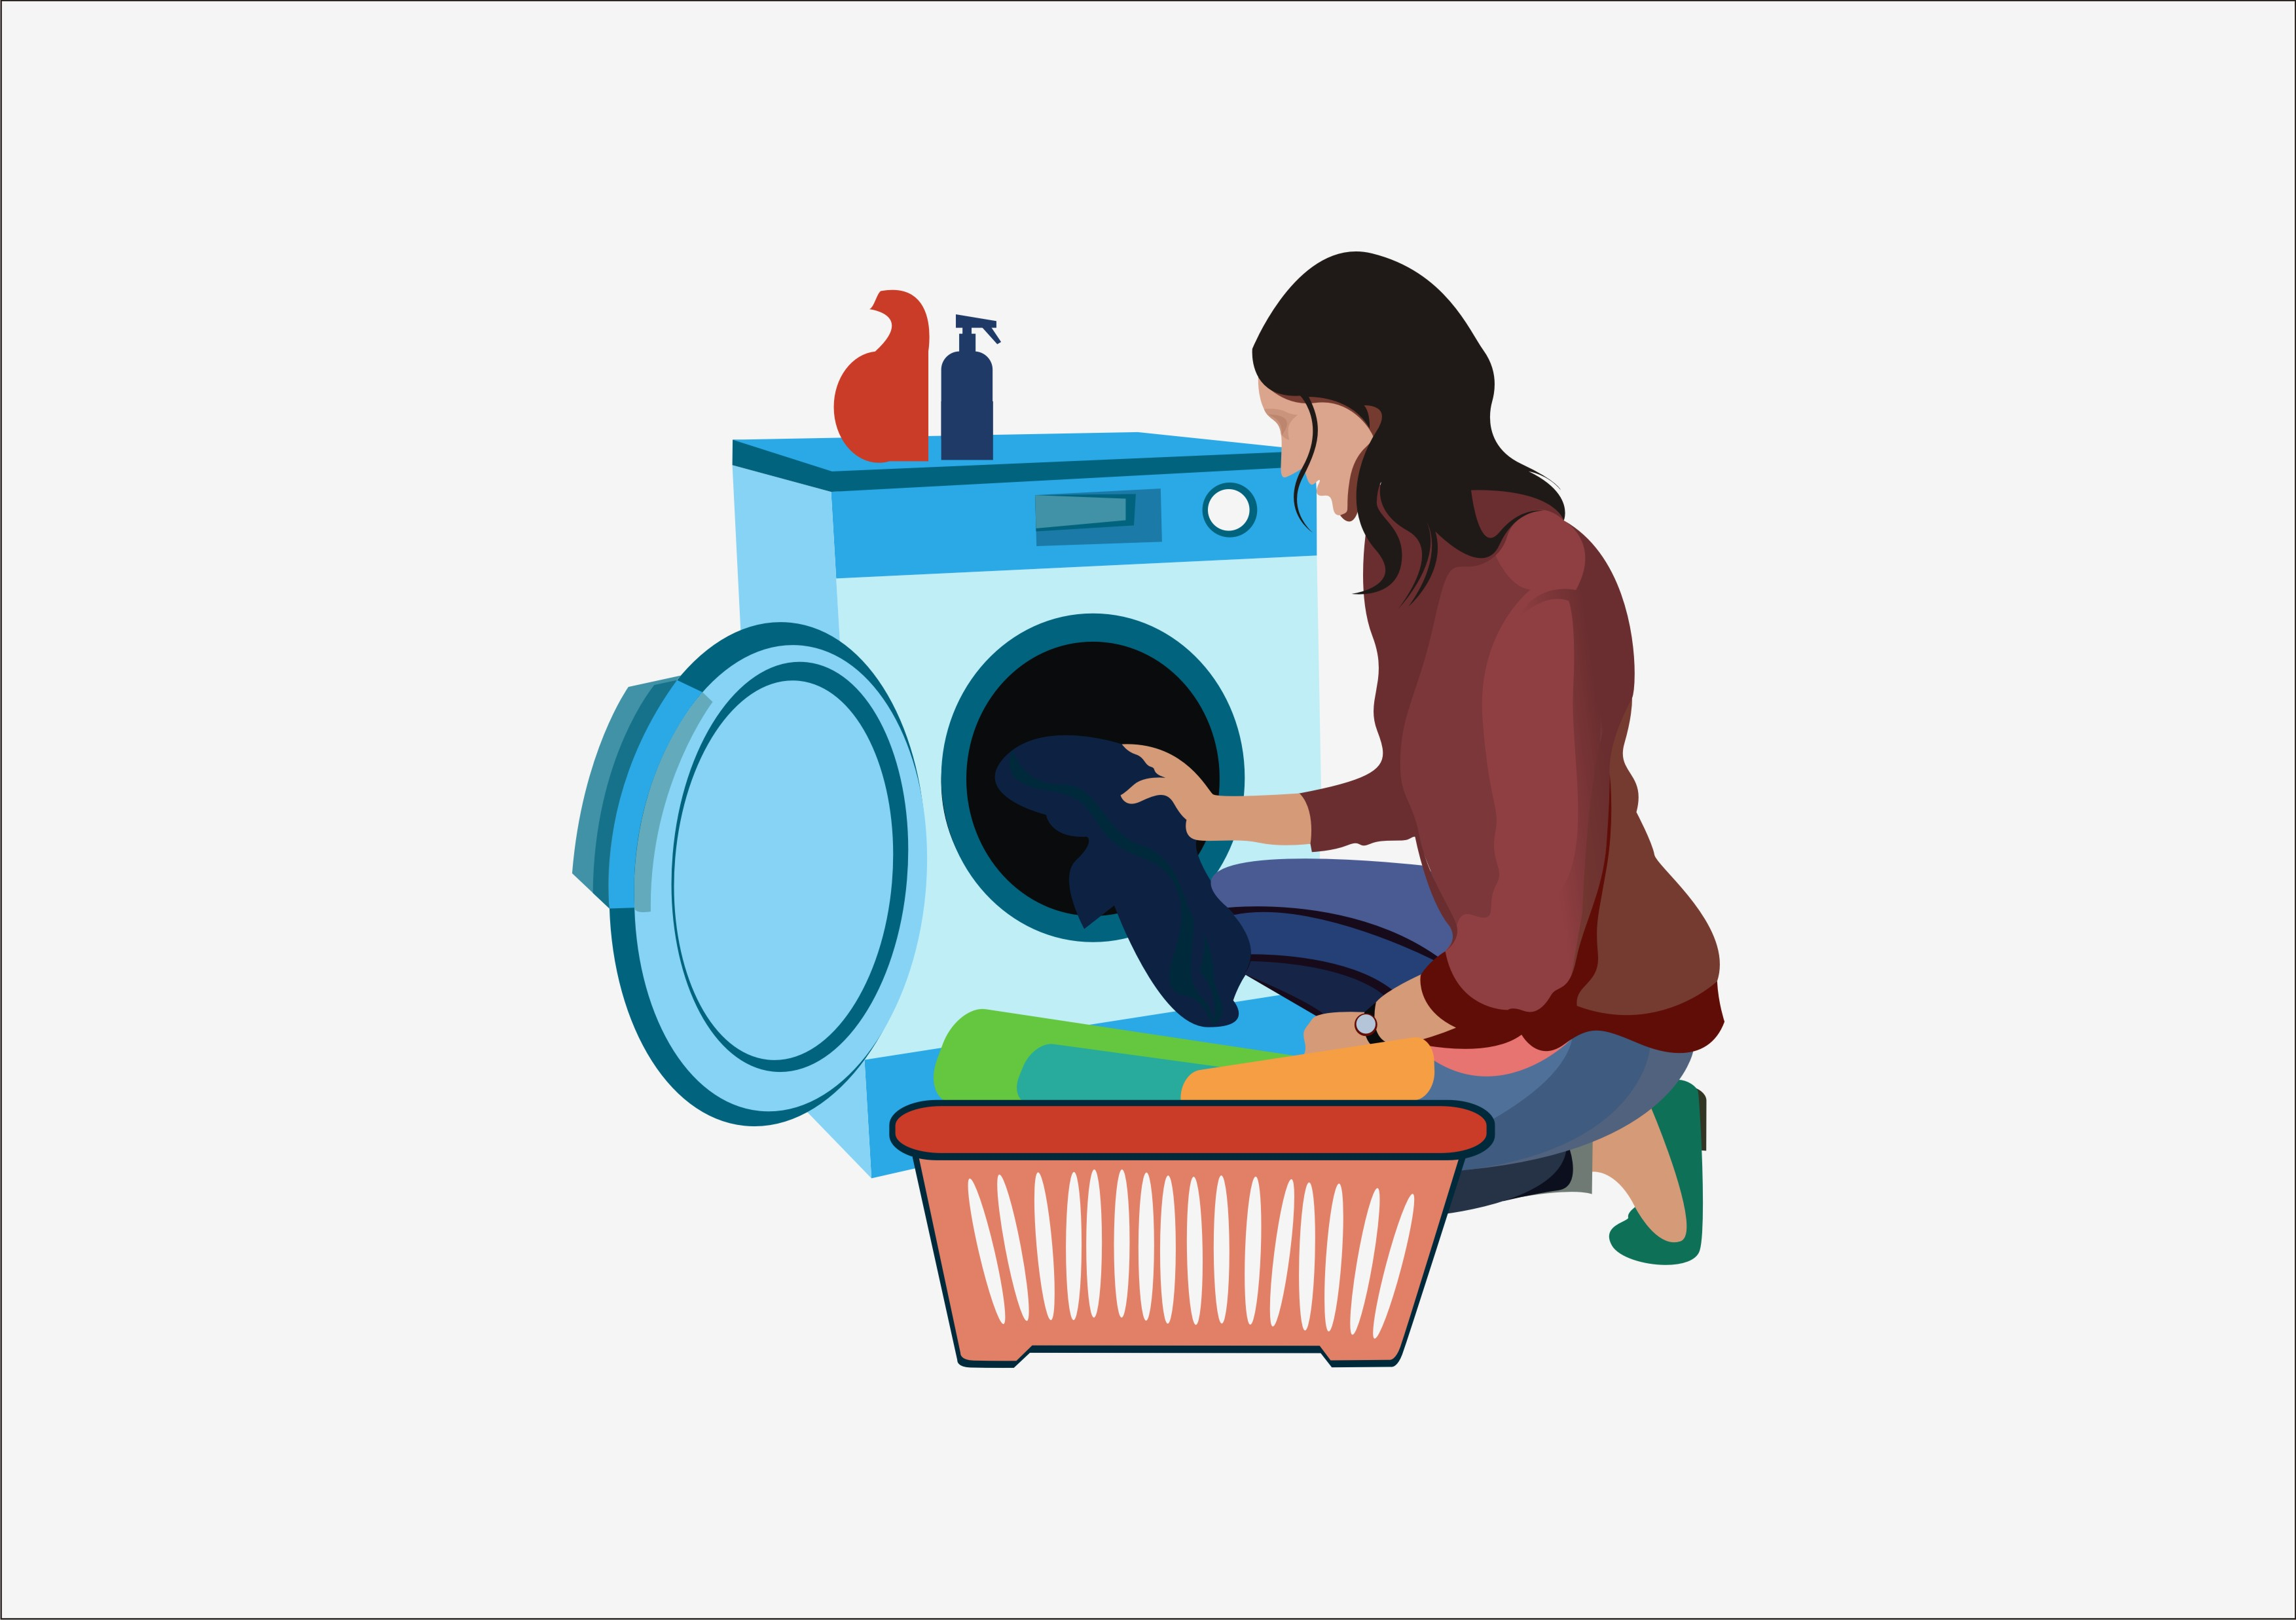 icon,  vector,  illustration of people washing